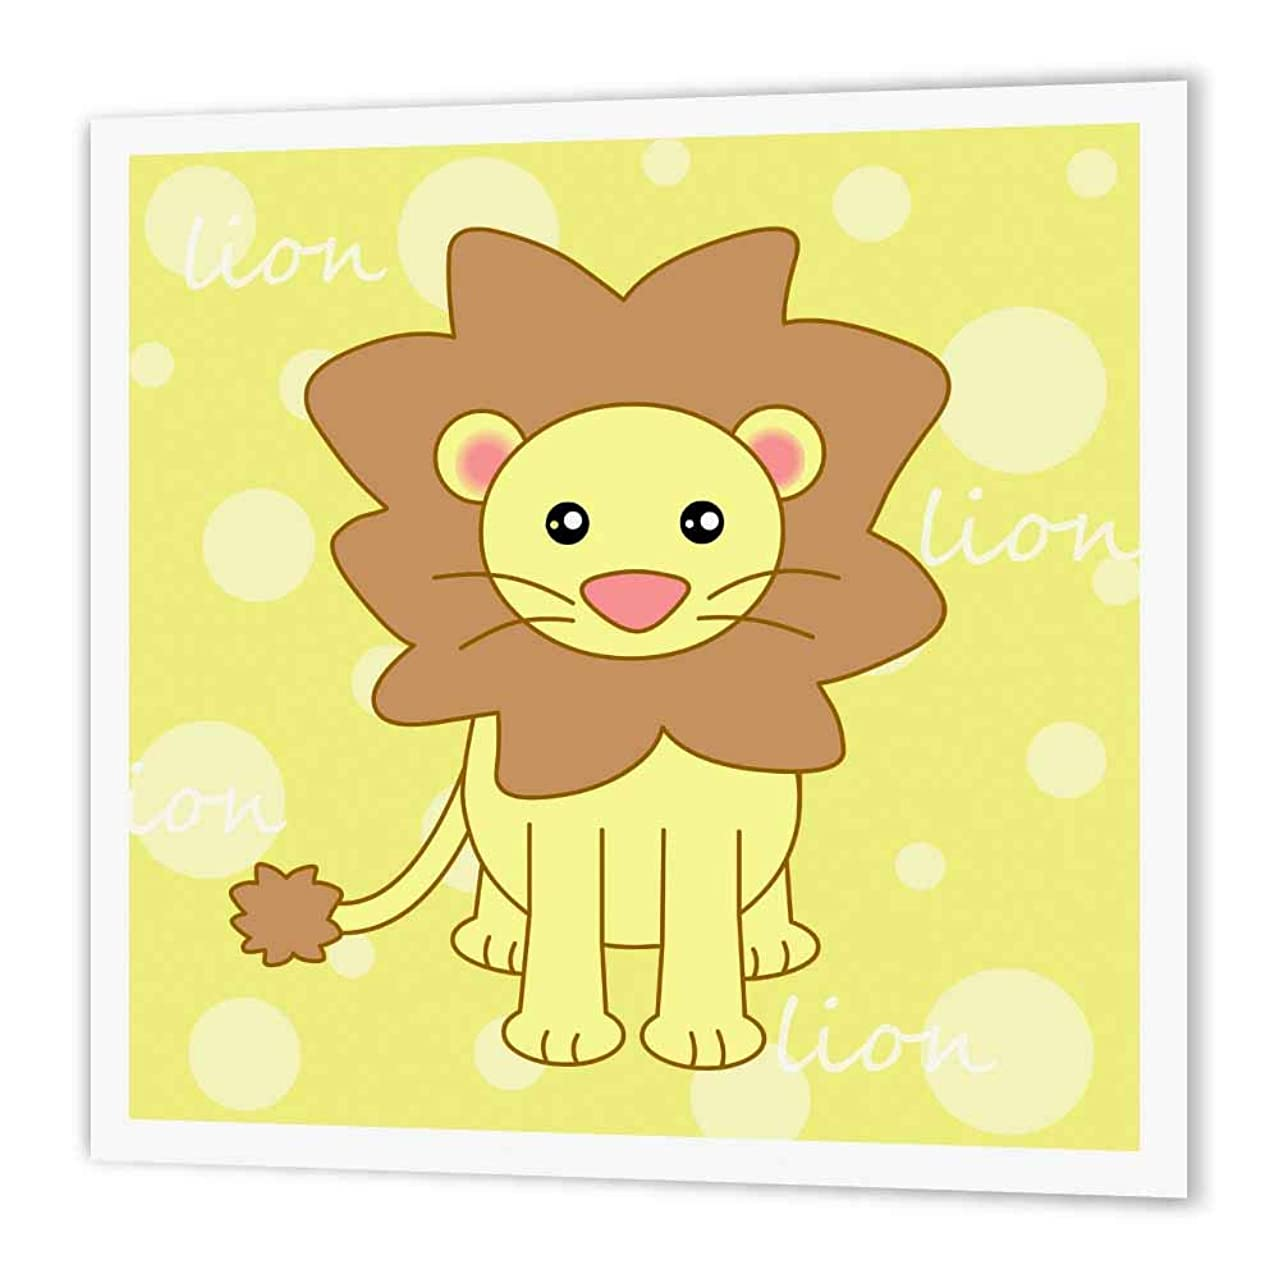 3dRose ht_6101_3 Yellow Baby Lion-Iron on Heat Transfer Paper for White Material, 10 by 10-Inch